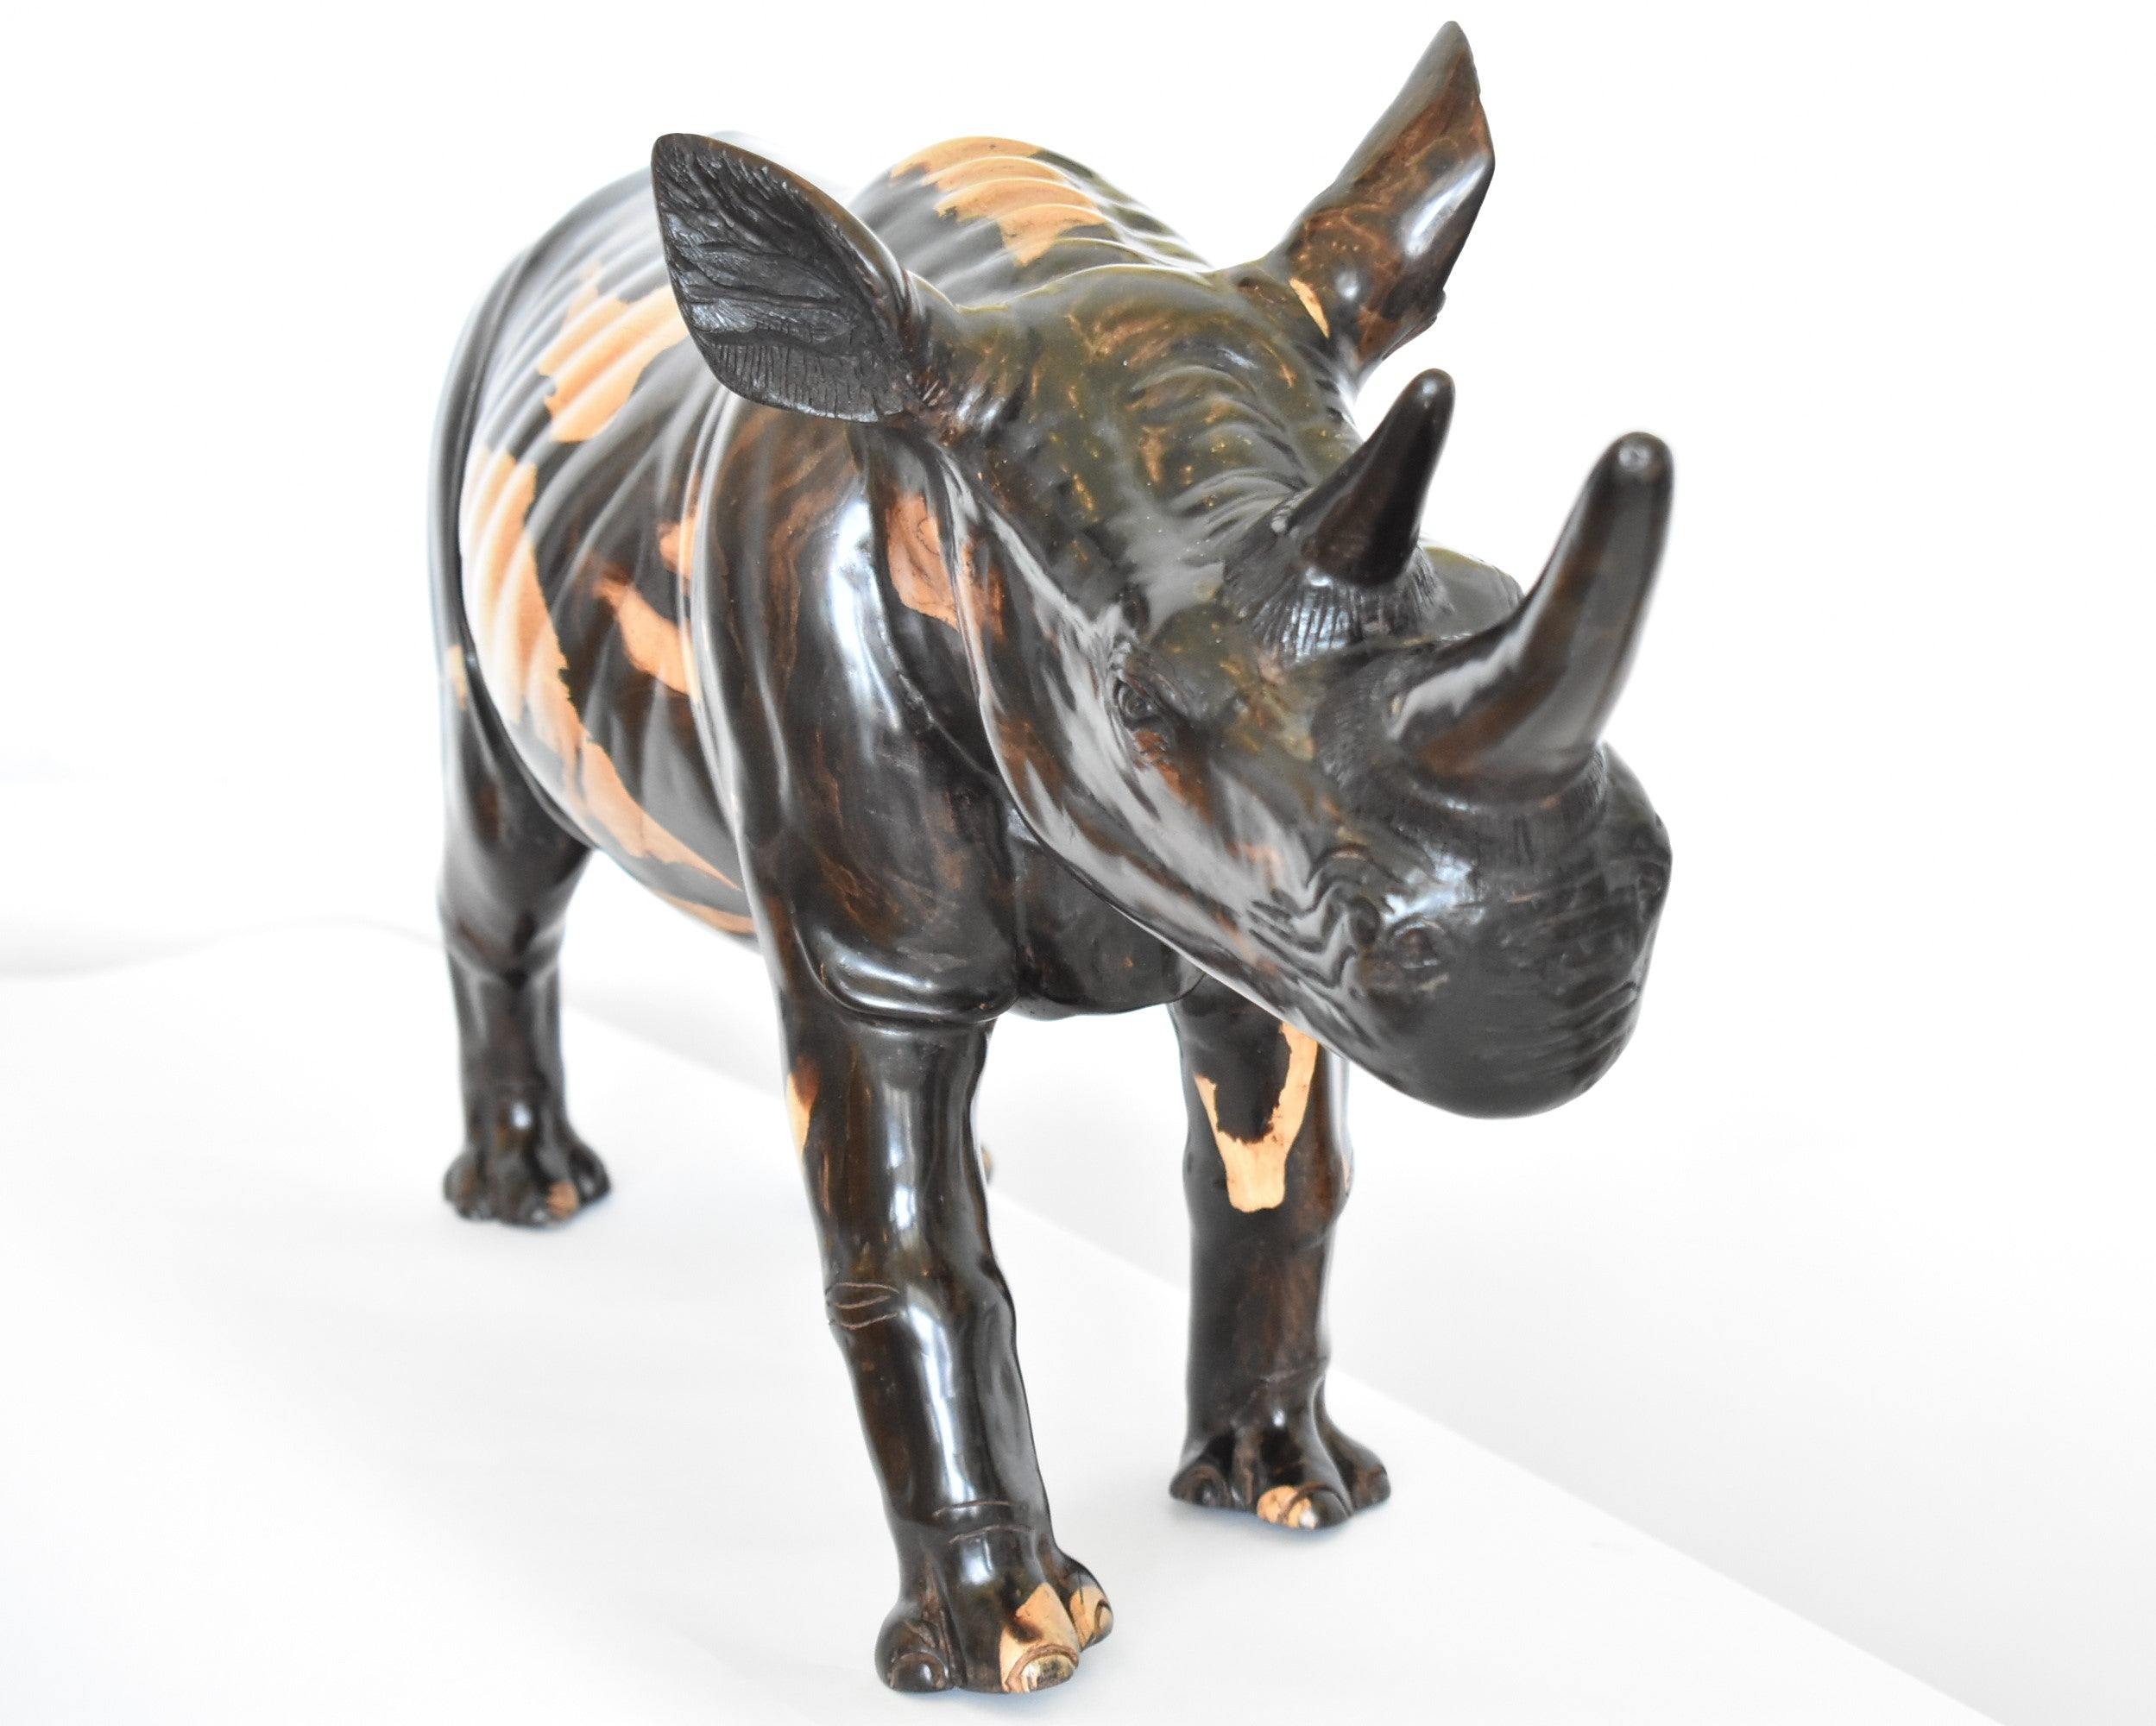 Exceptional Rhino carving from pure ebony wood - Africa Art, Exquisiti